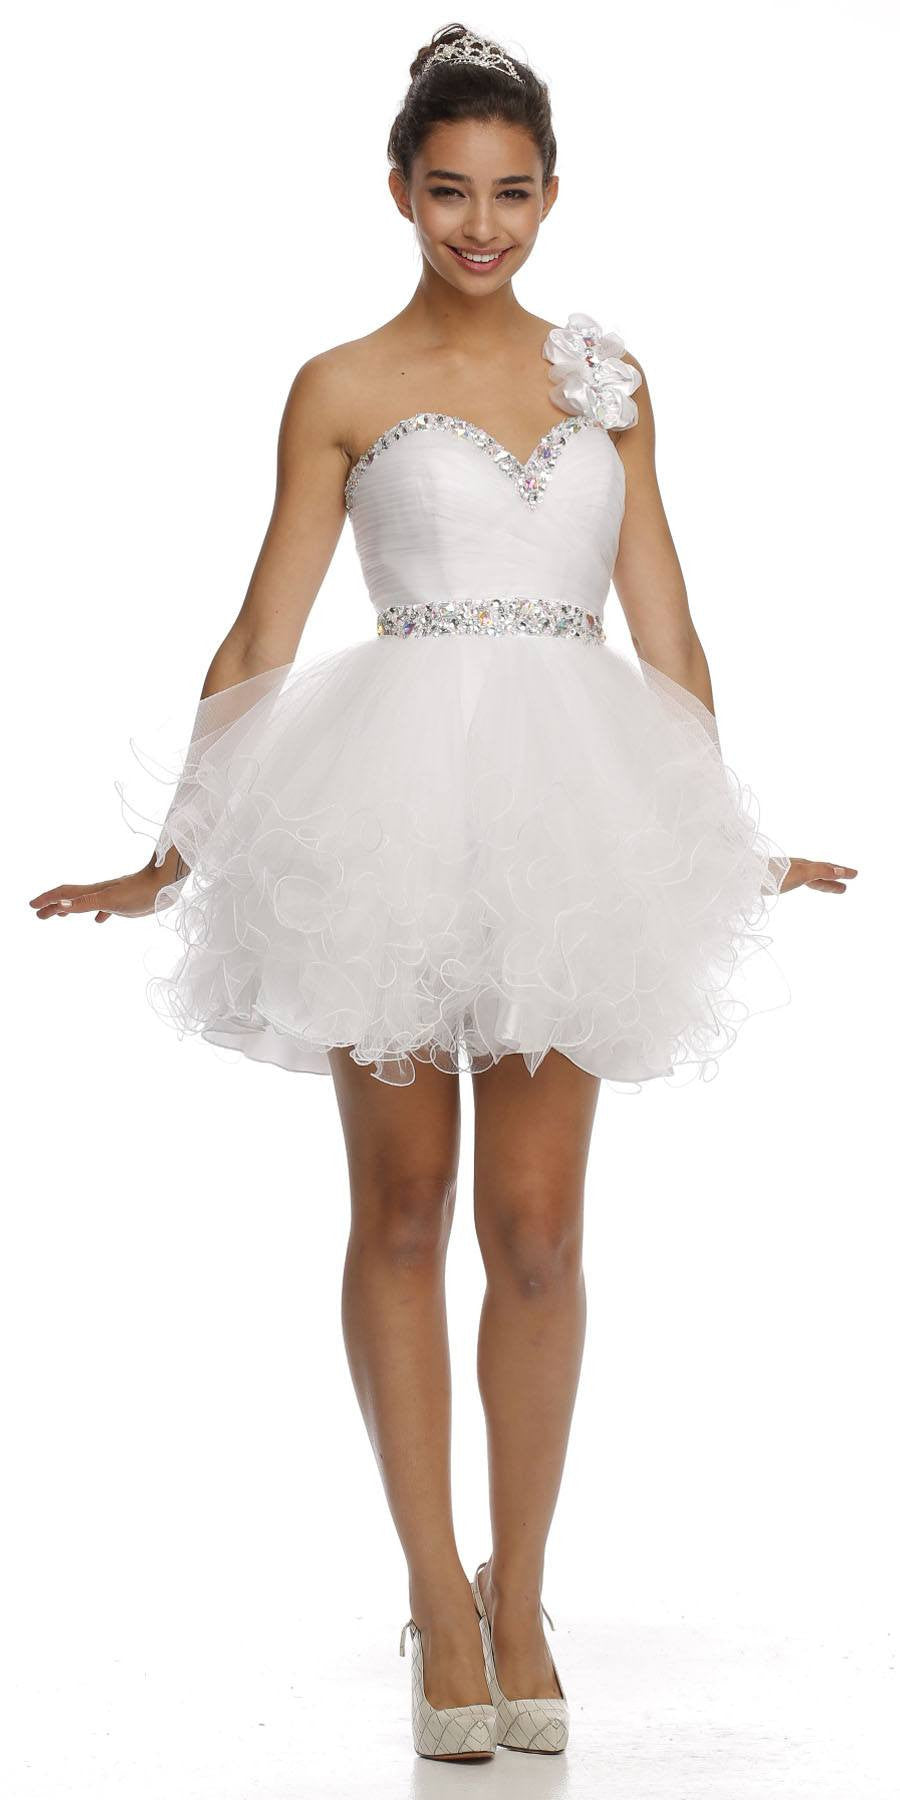 f1c3a3fe335 Poofy Tulle Skirt White Dress One Shoulder Sequin Sweetheart. Tap to expand